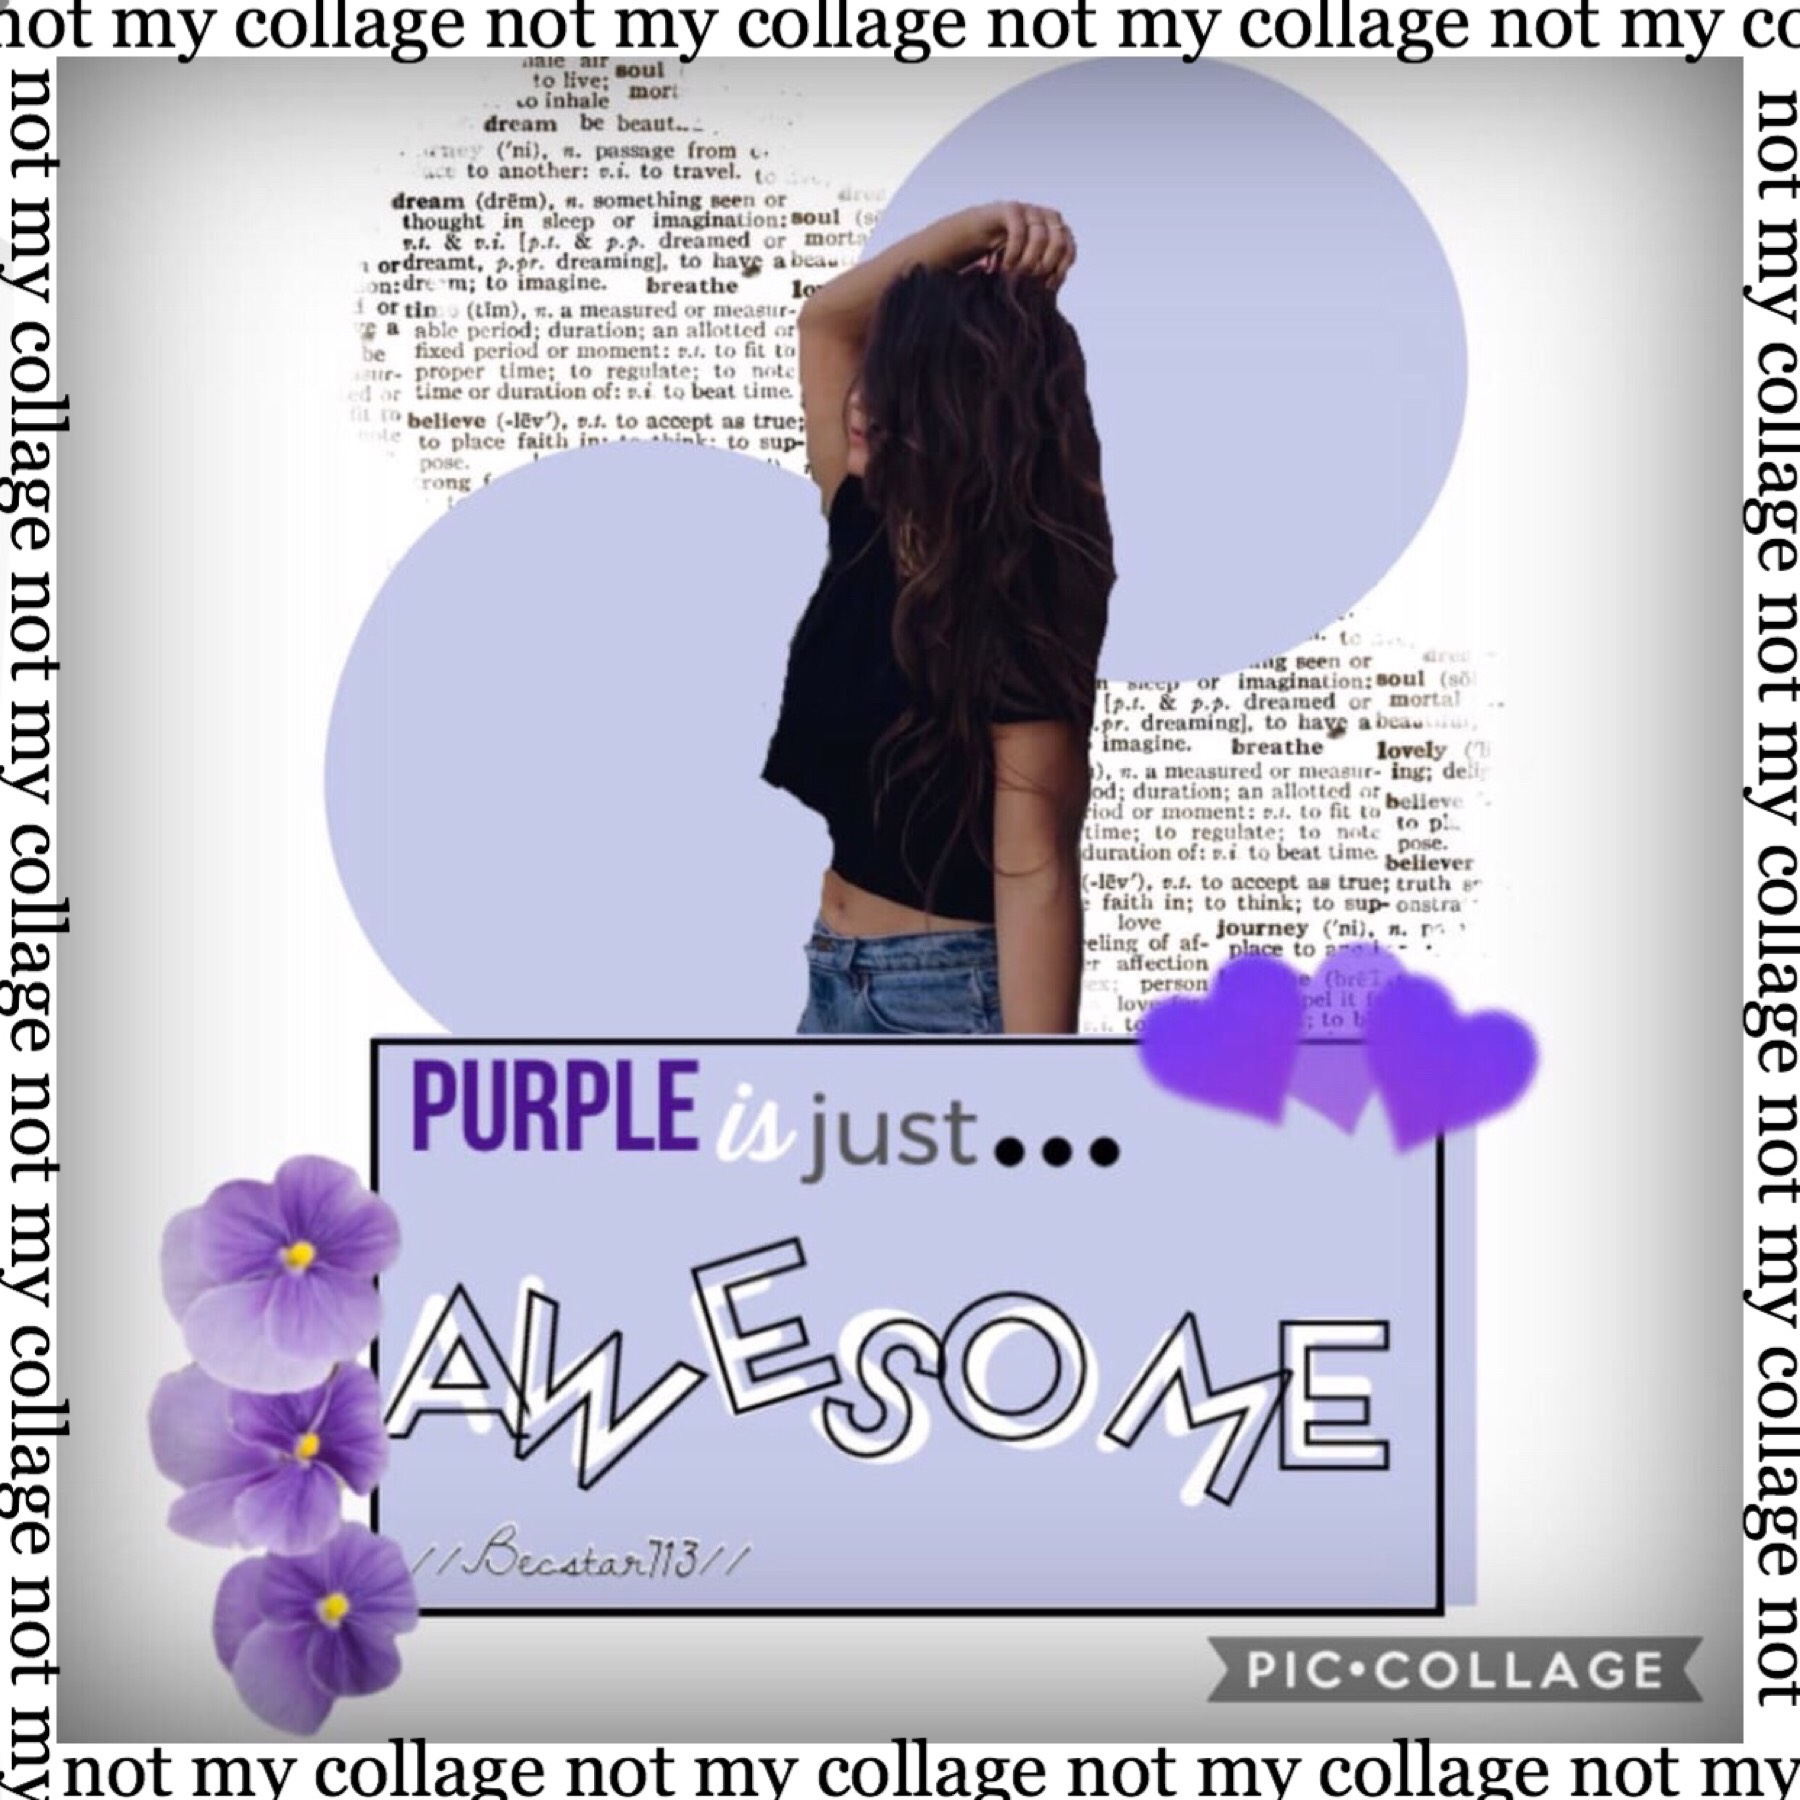 This beautiful collage is made by @Becstar713 so show some support and like this collage and check out their page!